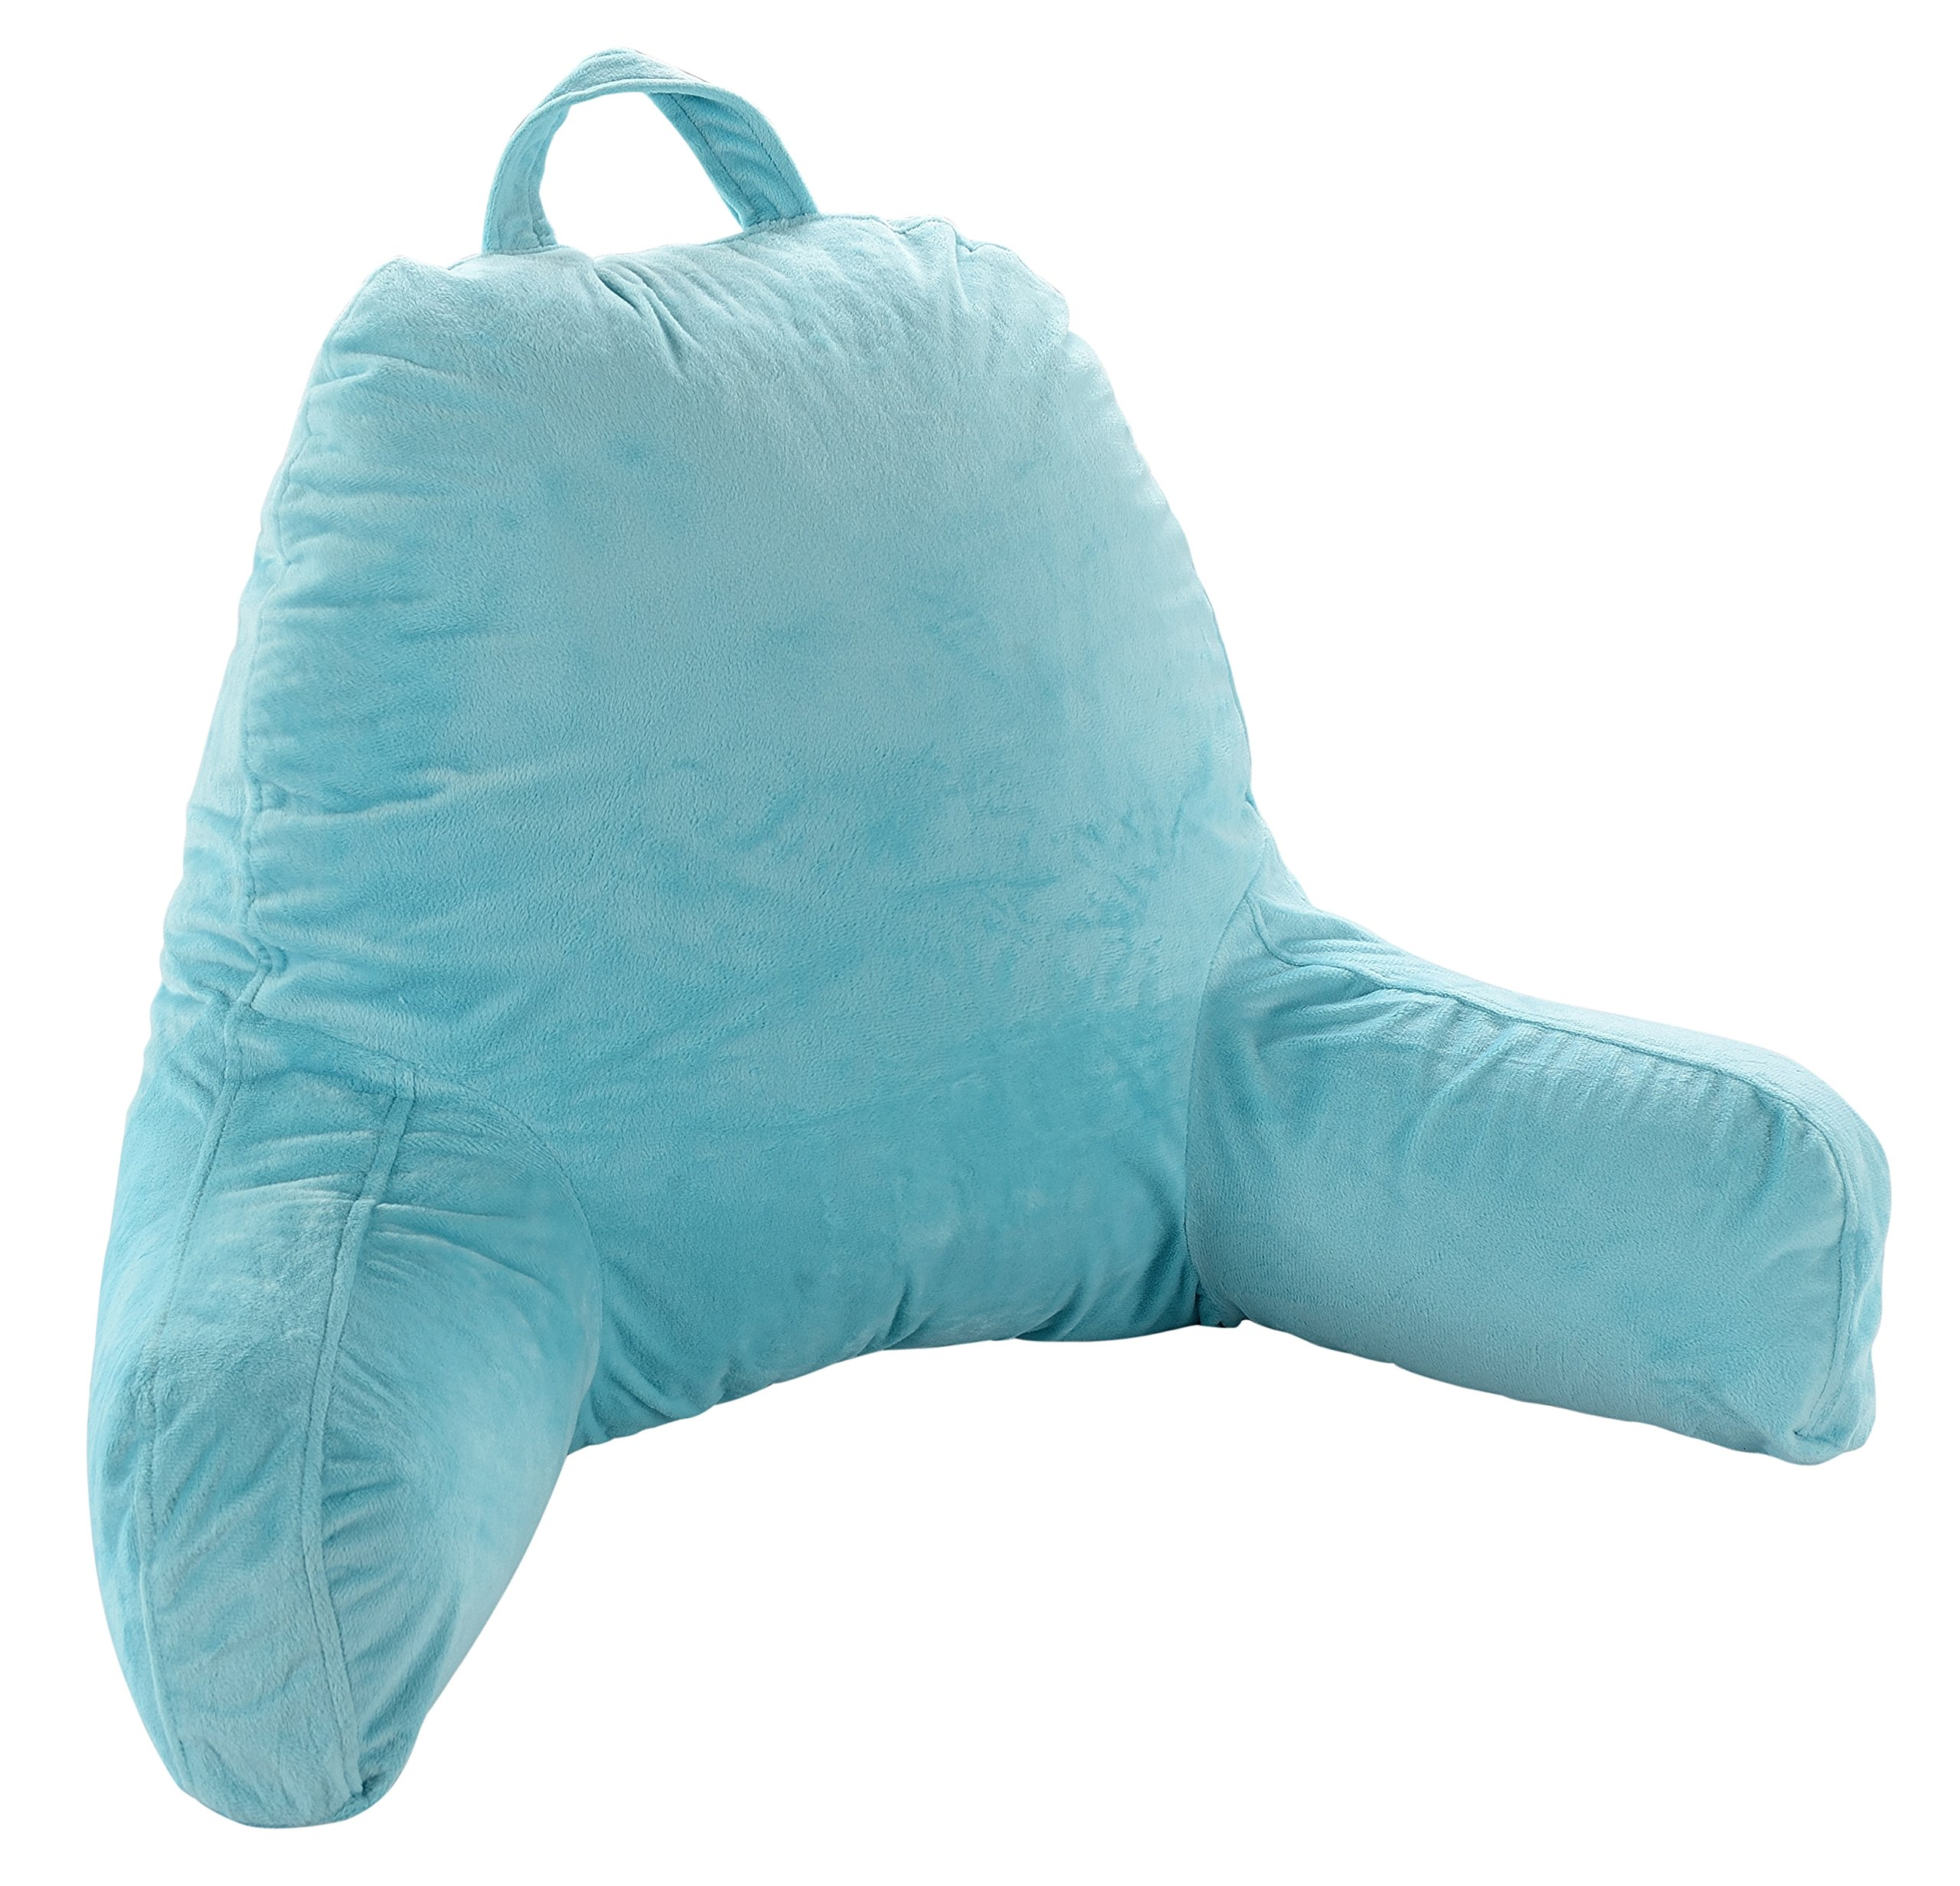 Cheer Collection Kids Size Reading Pillow with Arms for Sitting Up in Bed (Sky Blue) by Cheer Collection